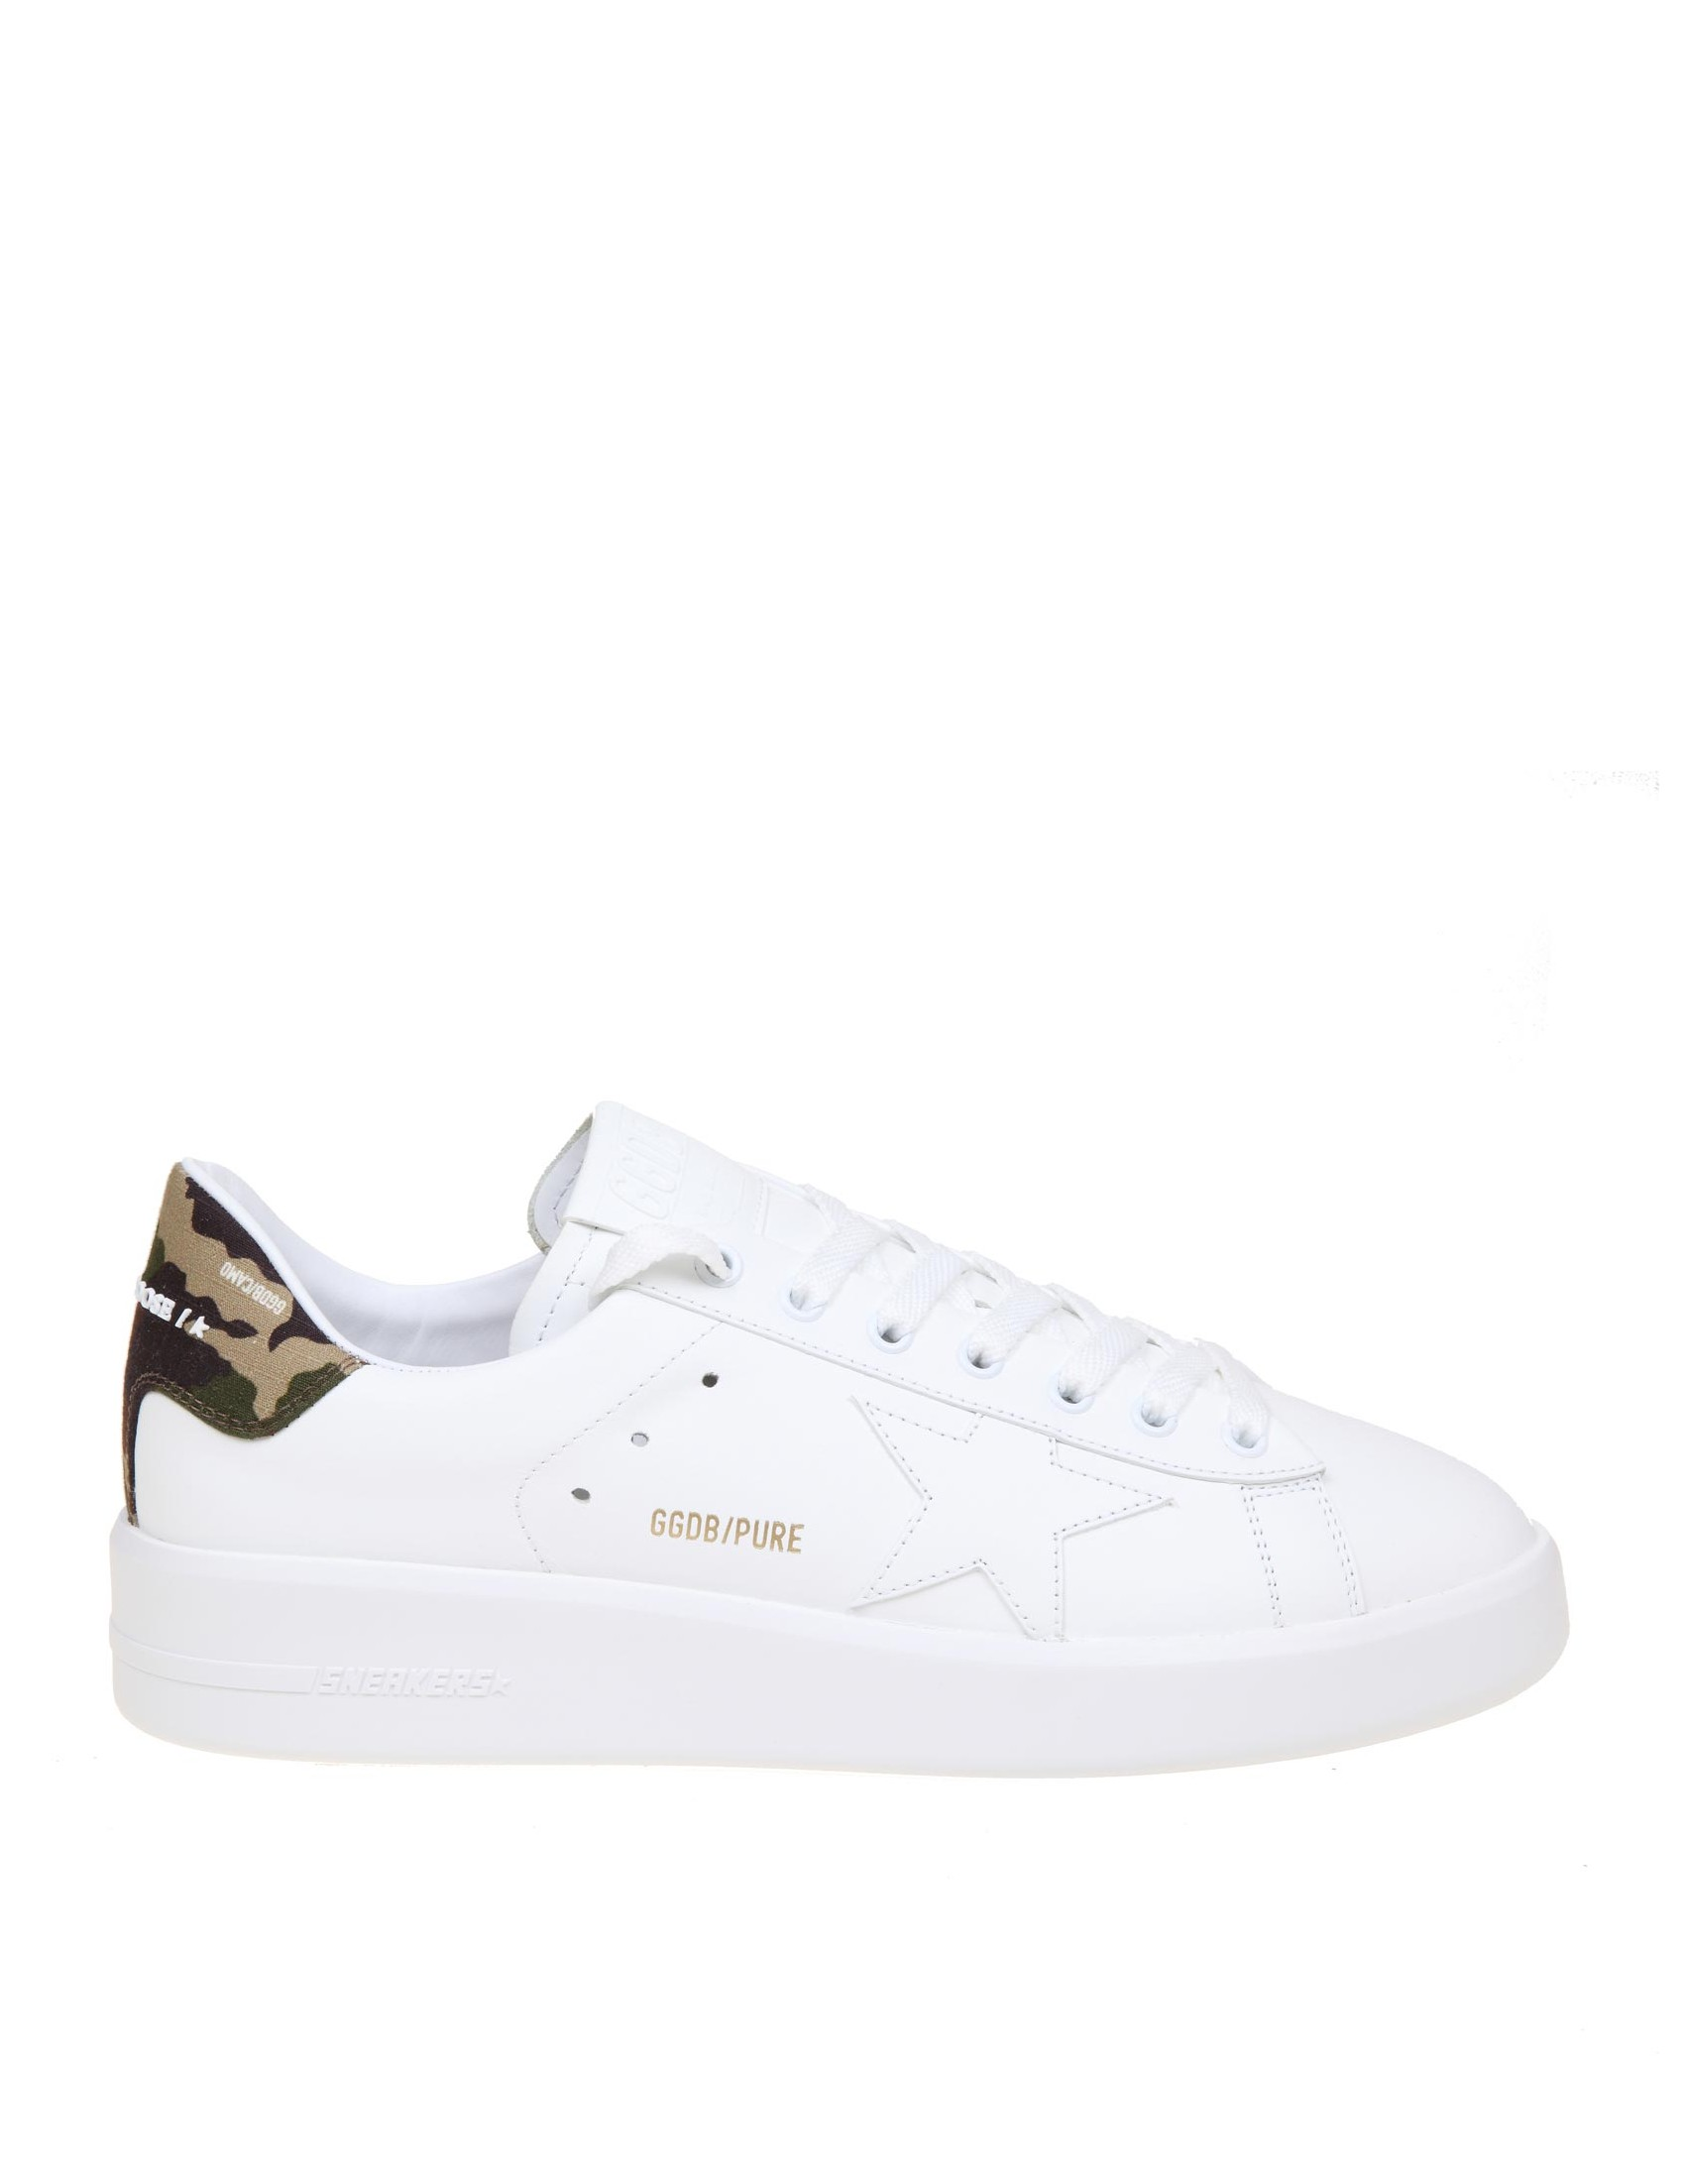 GOLDEN GOOSE GOLDEN GOOSE PURE STAR SNEAKERS IN LEATHER